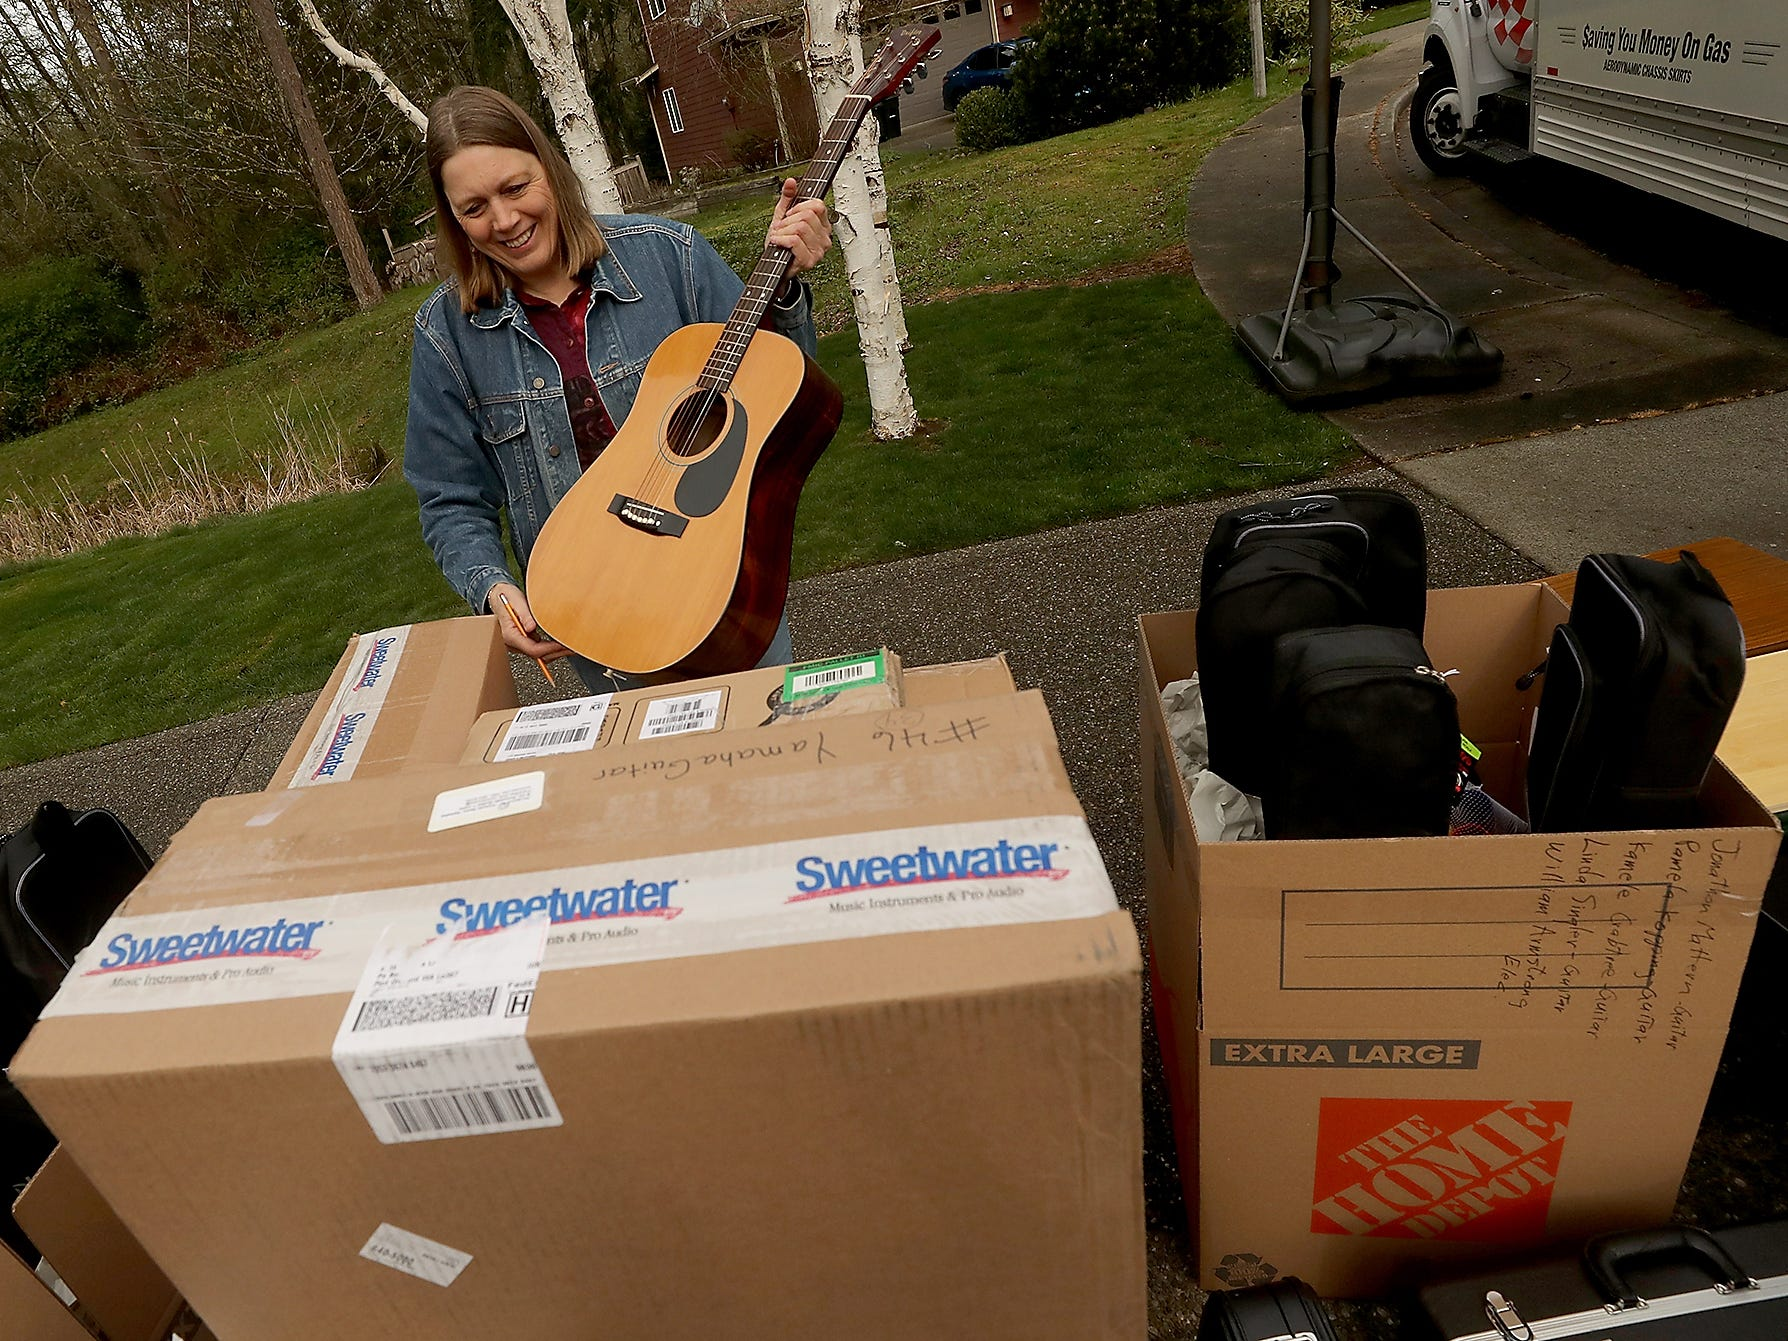 April Dever removes a guitar from the stack of instruments so she can tag it prior to it being loaded on the truck on Friday, April 5, 2019. A neighbor of the home where volunteers were loading donated instruments bound for Paradise, California wildfire victims, donated the guitar after seeing all the activity and talking with the organizers.